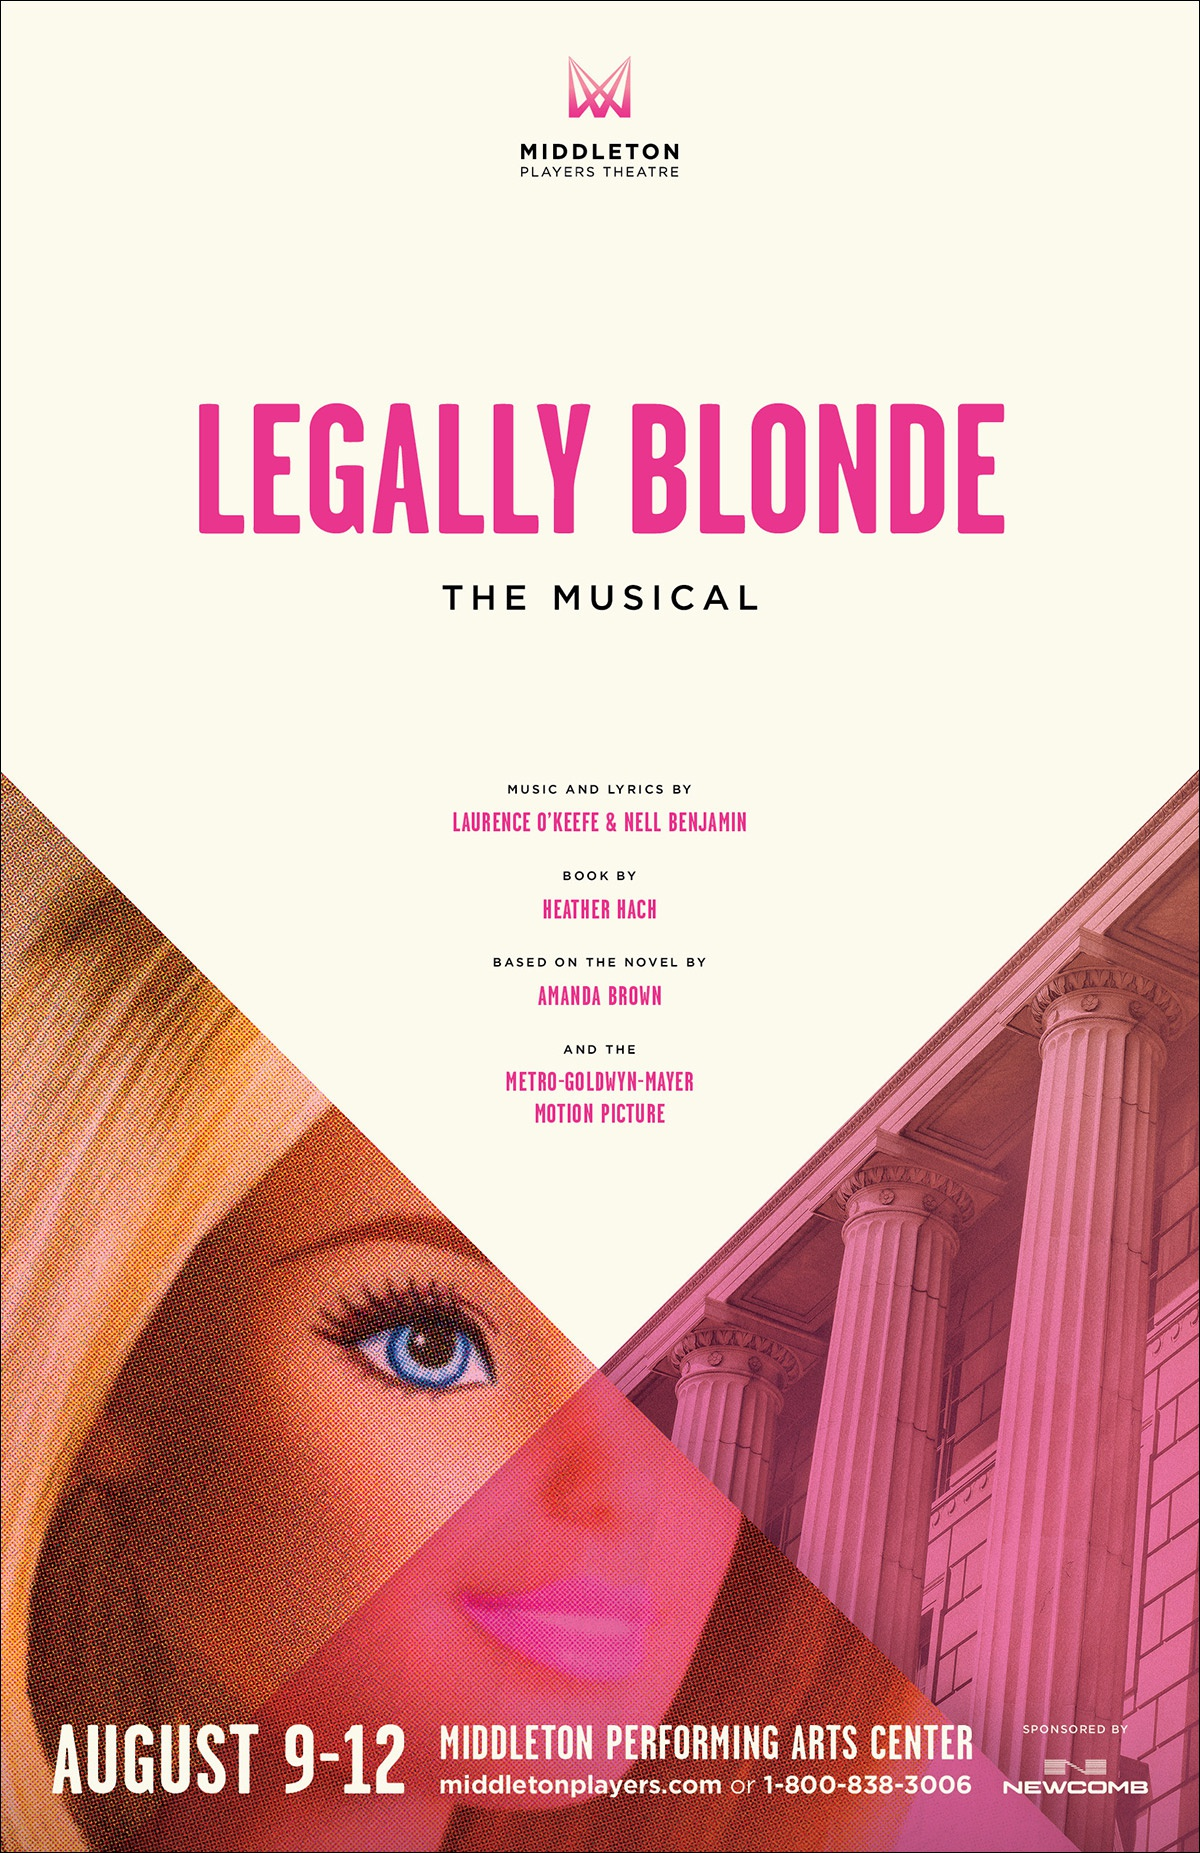 Paul j bartlett legally blonde poster